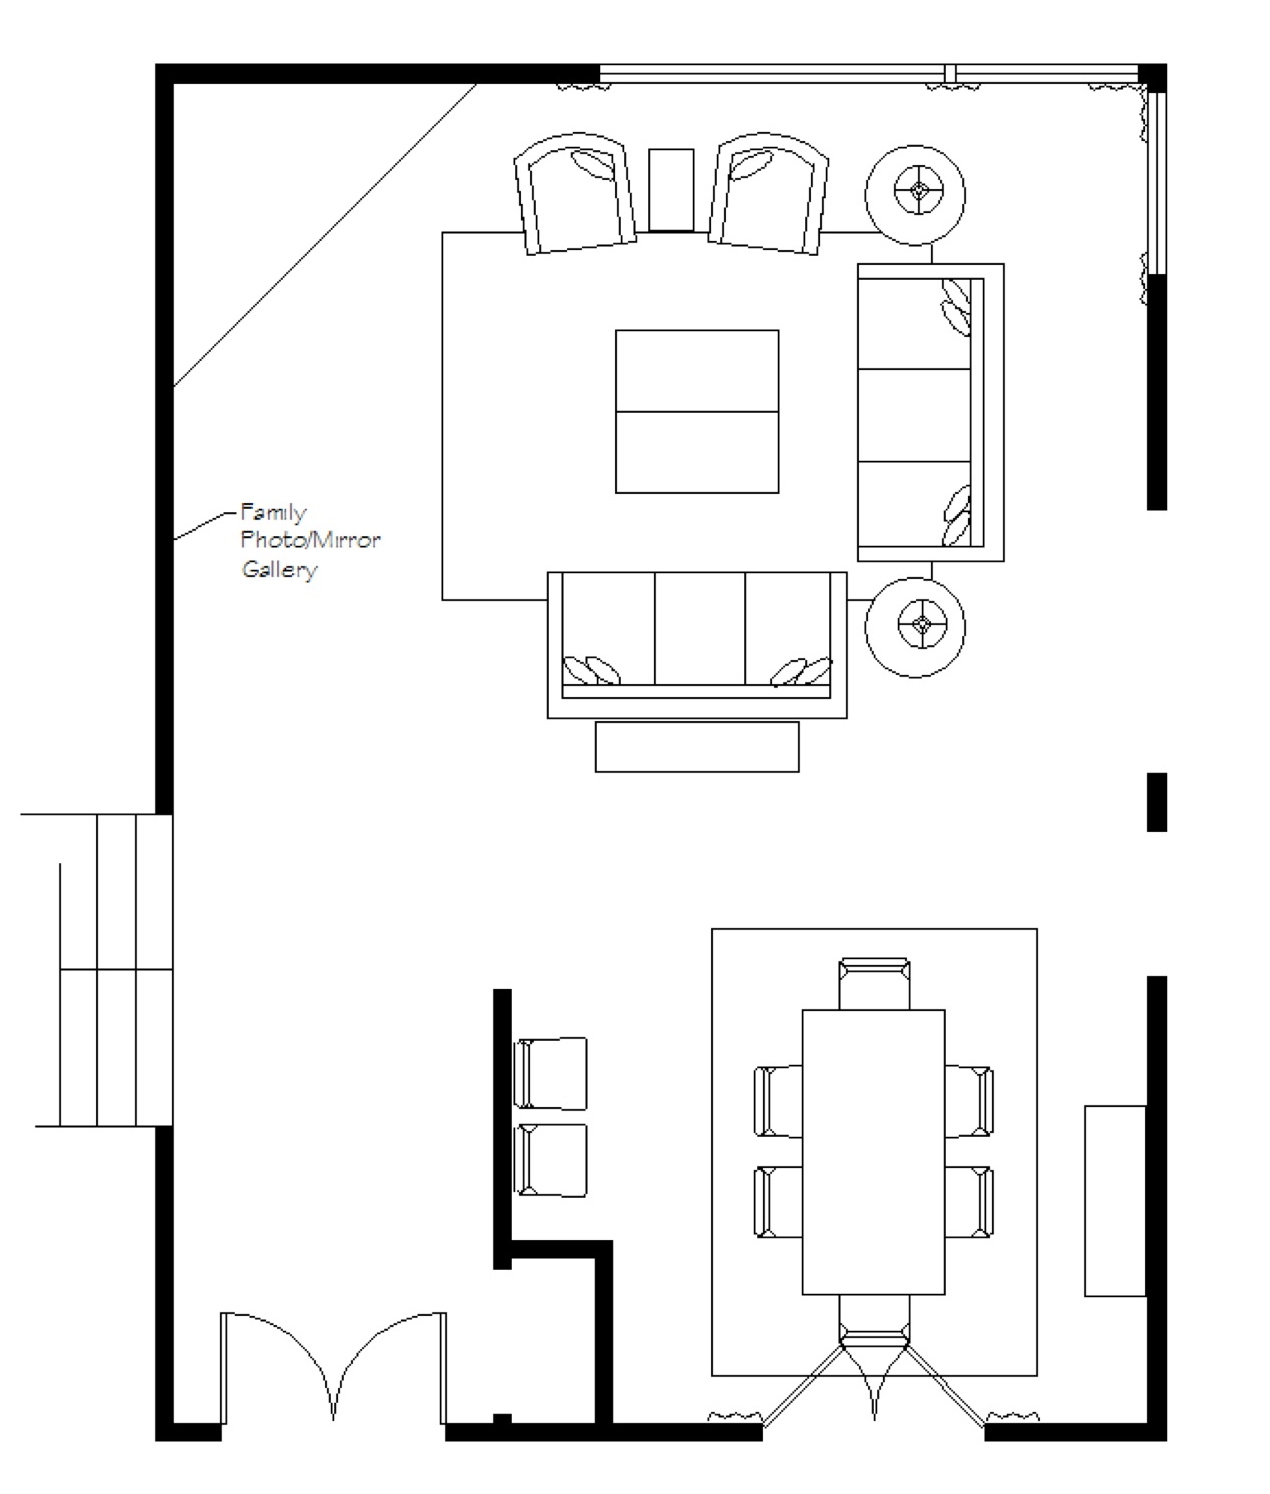 Dining room and living room using the items show in her design plan